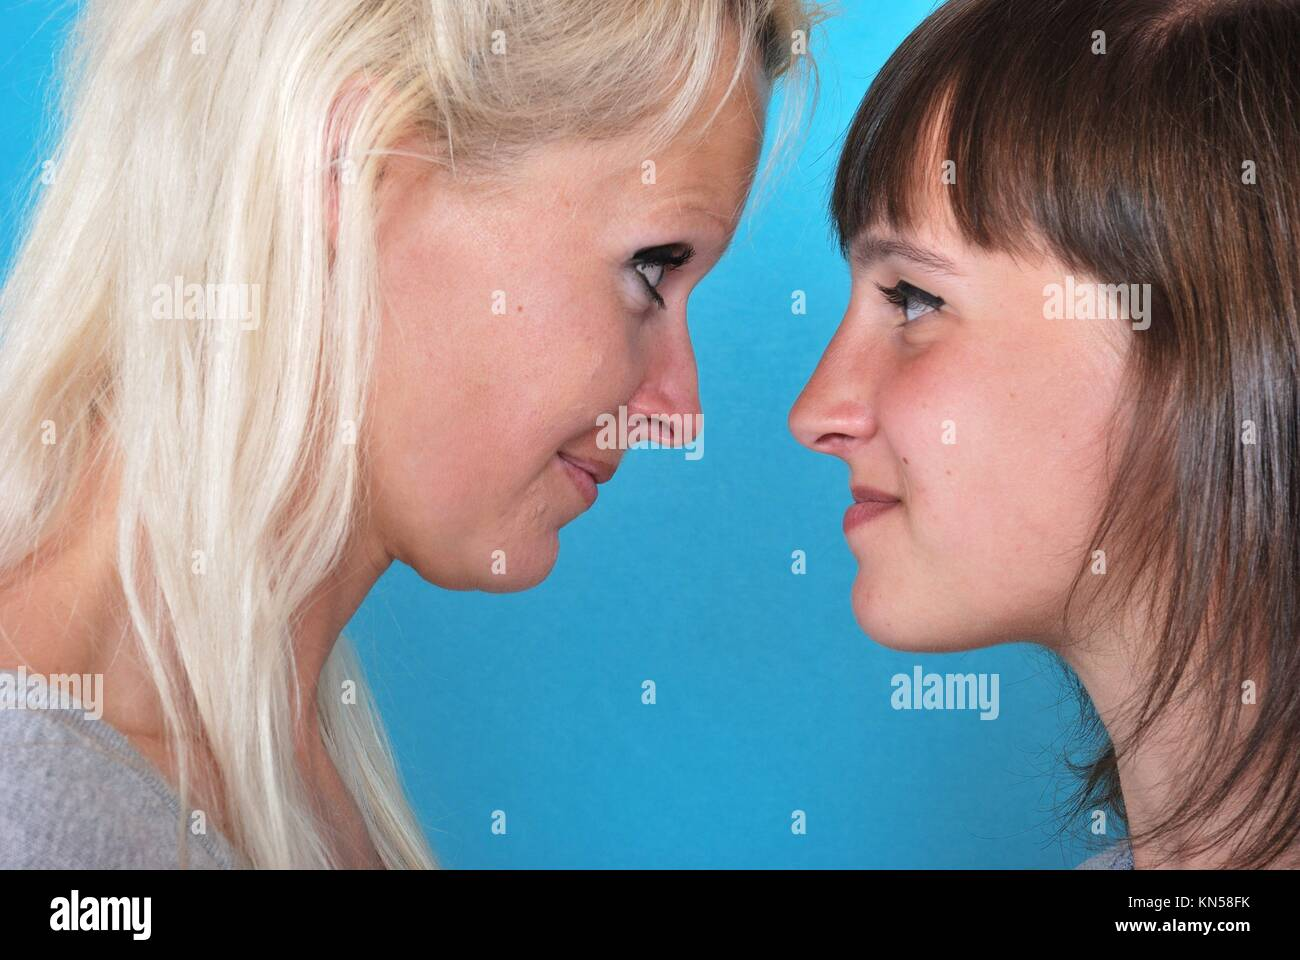 Complicity between mother and daughter. Stock Photo